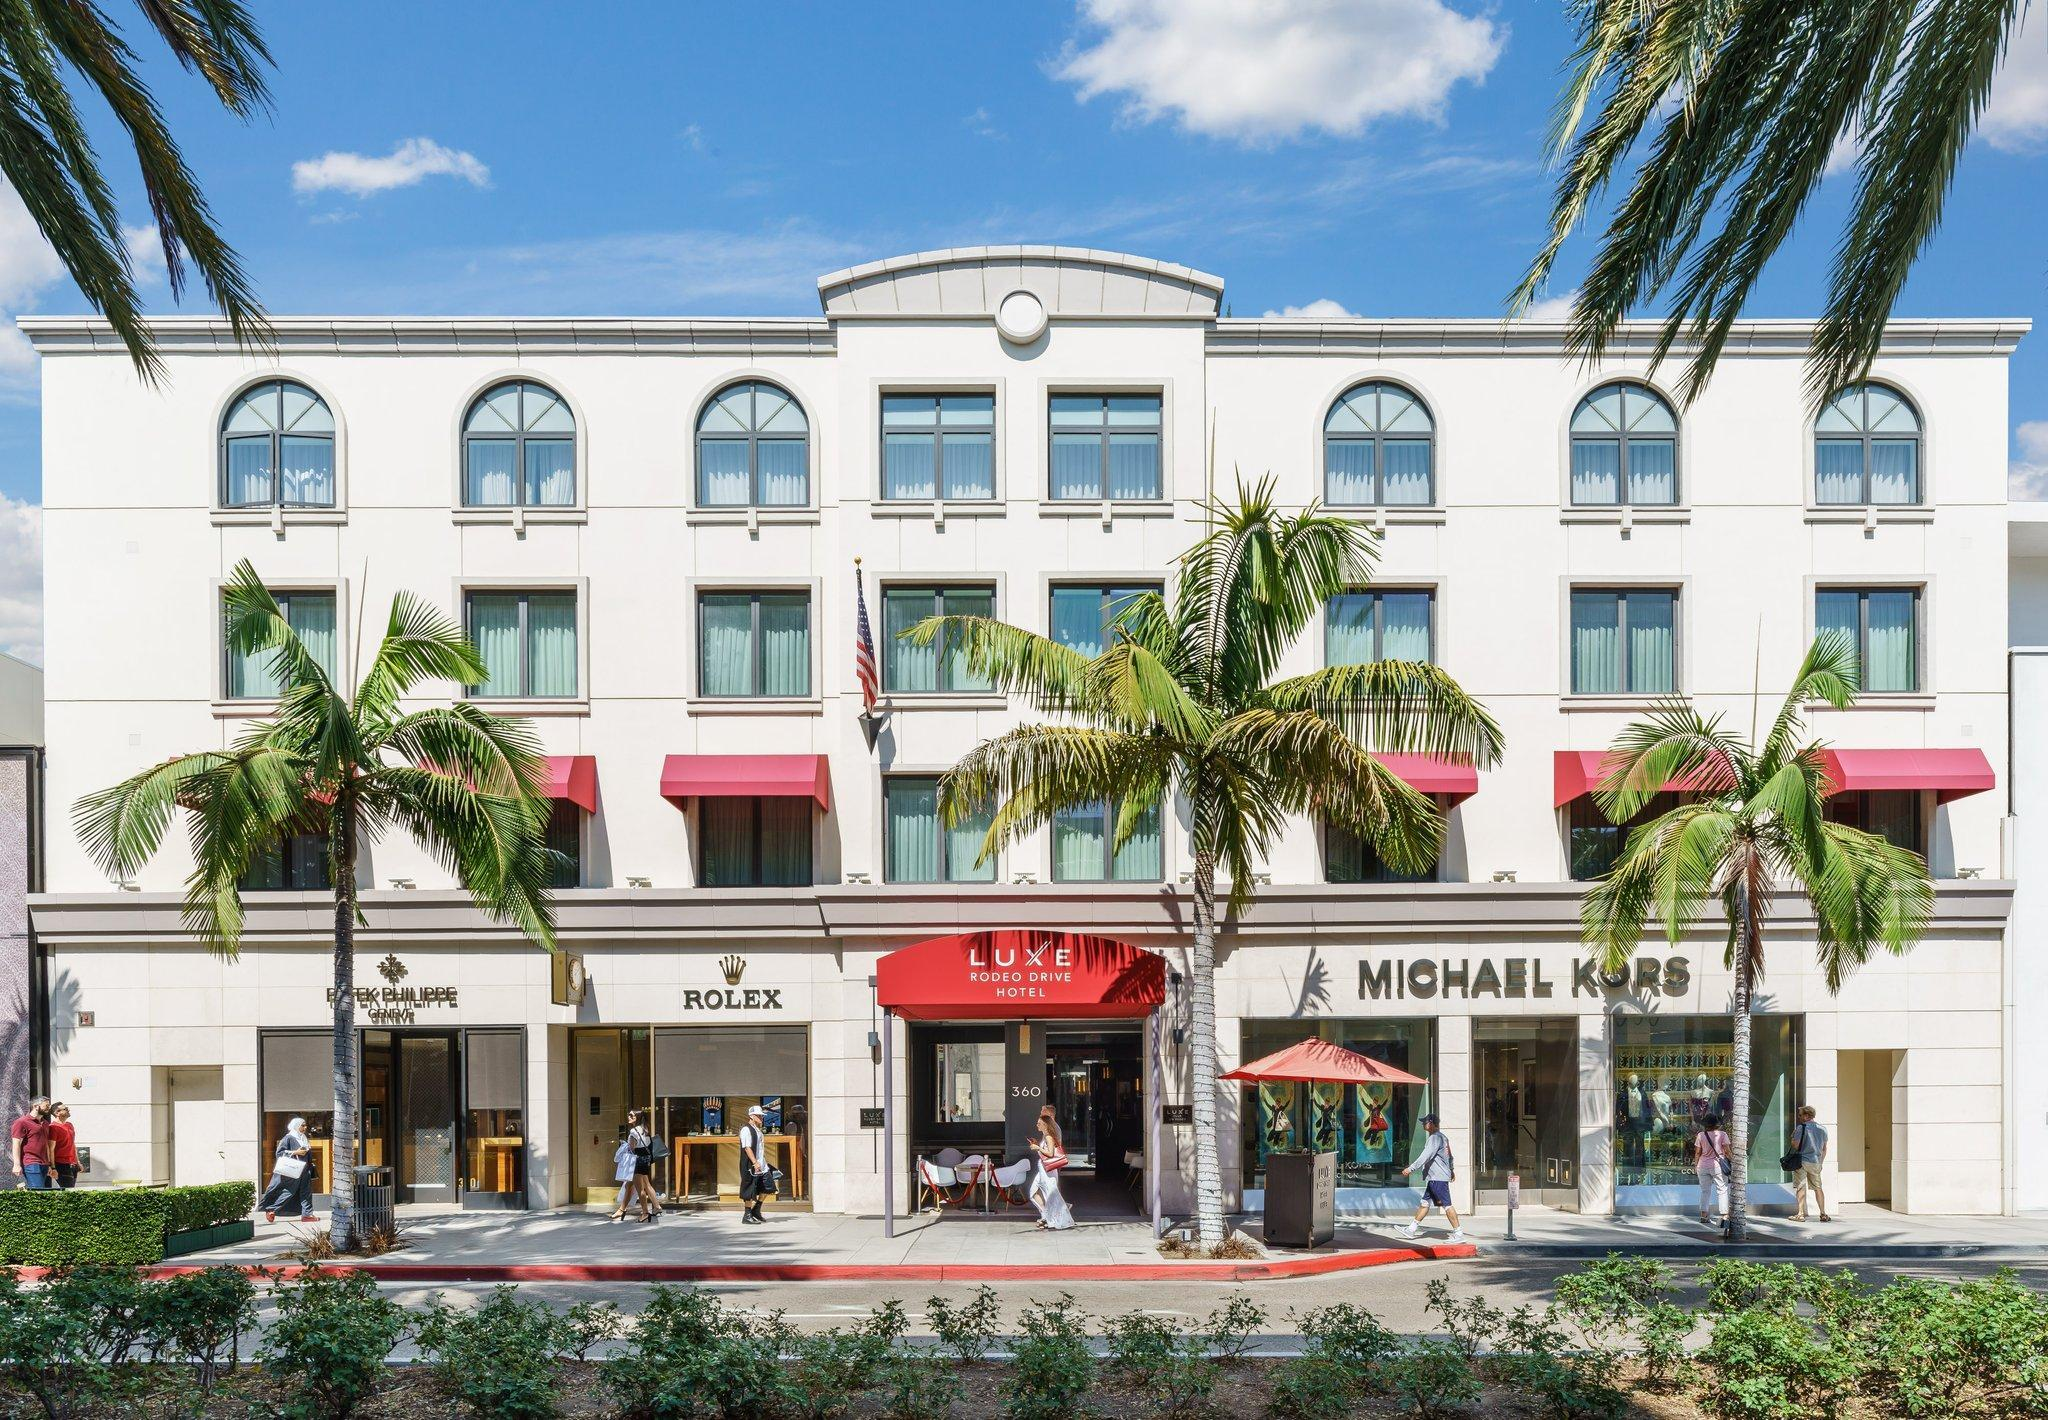 Luxe Rodeo Drive Hotel image